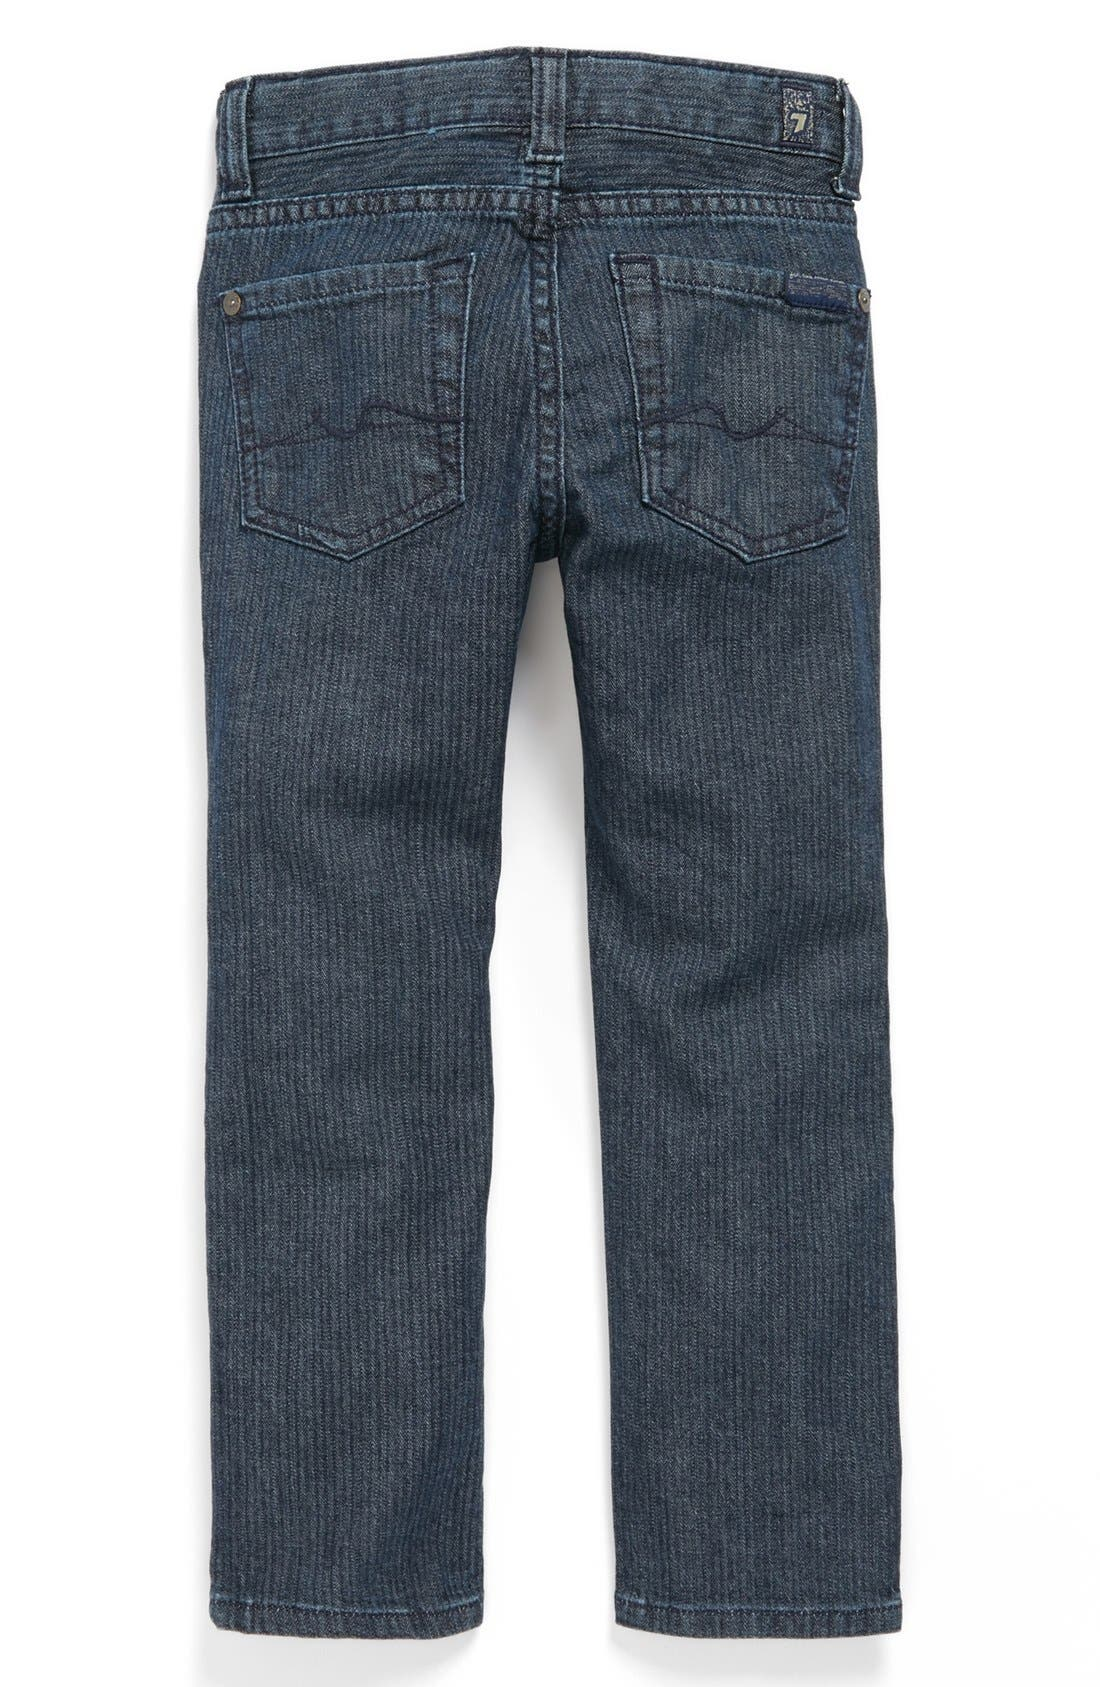 Main Image - 7 For All Mankind® 'Slimmy' Herringbone Slim Fit Jeans (Toddler Boys)